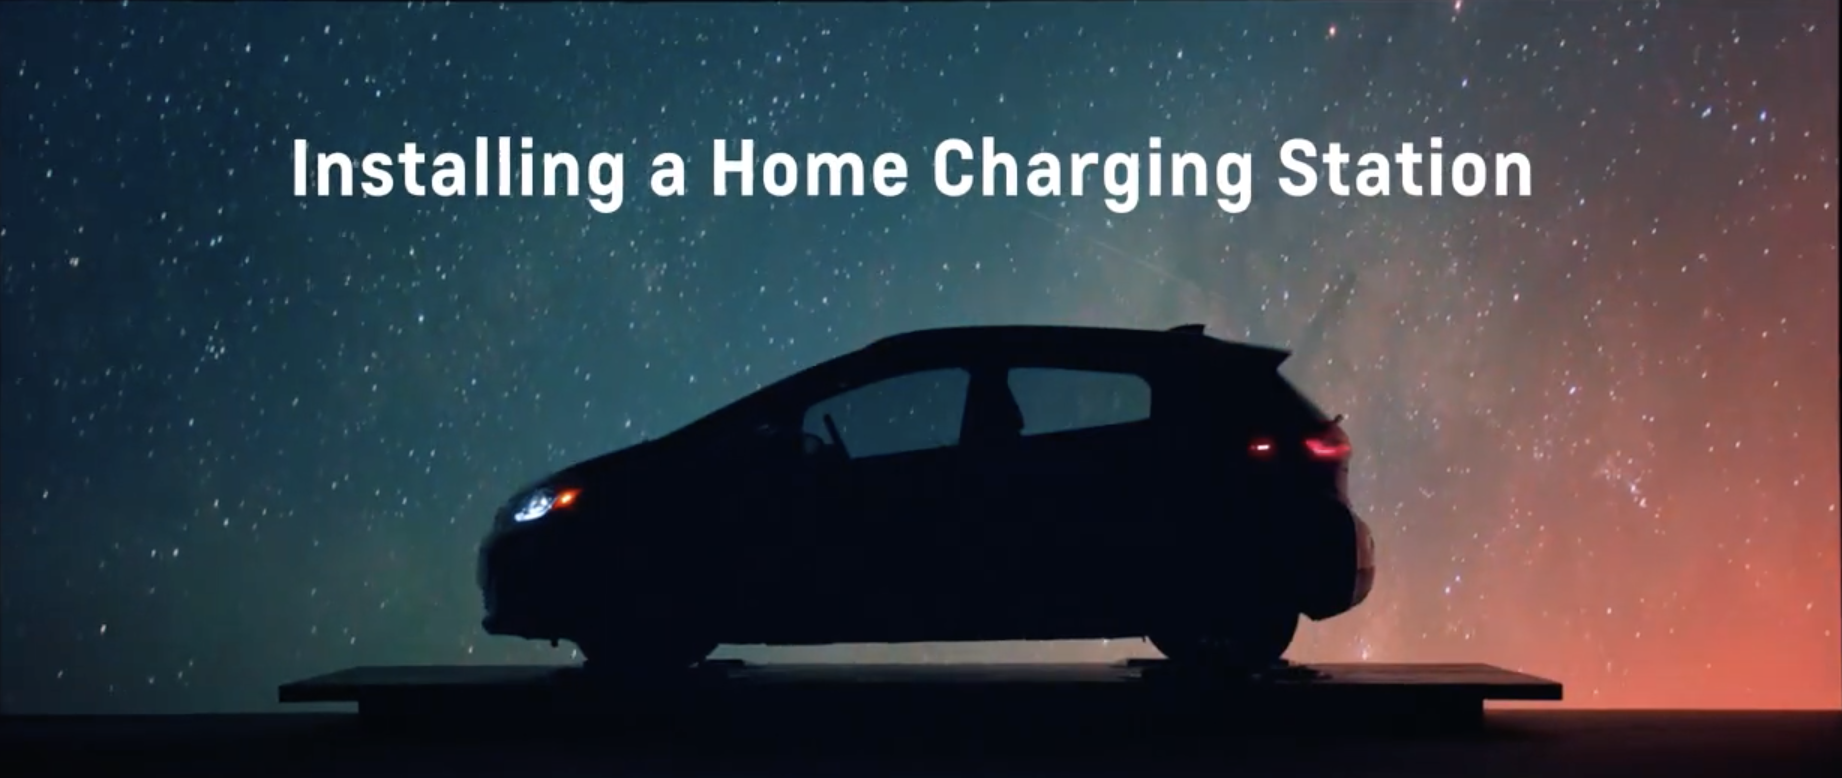 Chevy Bolt EV Academy: Installing a Home Charging Station